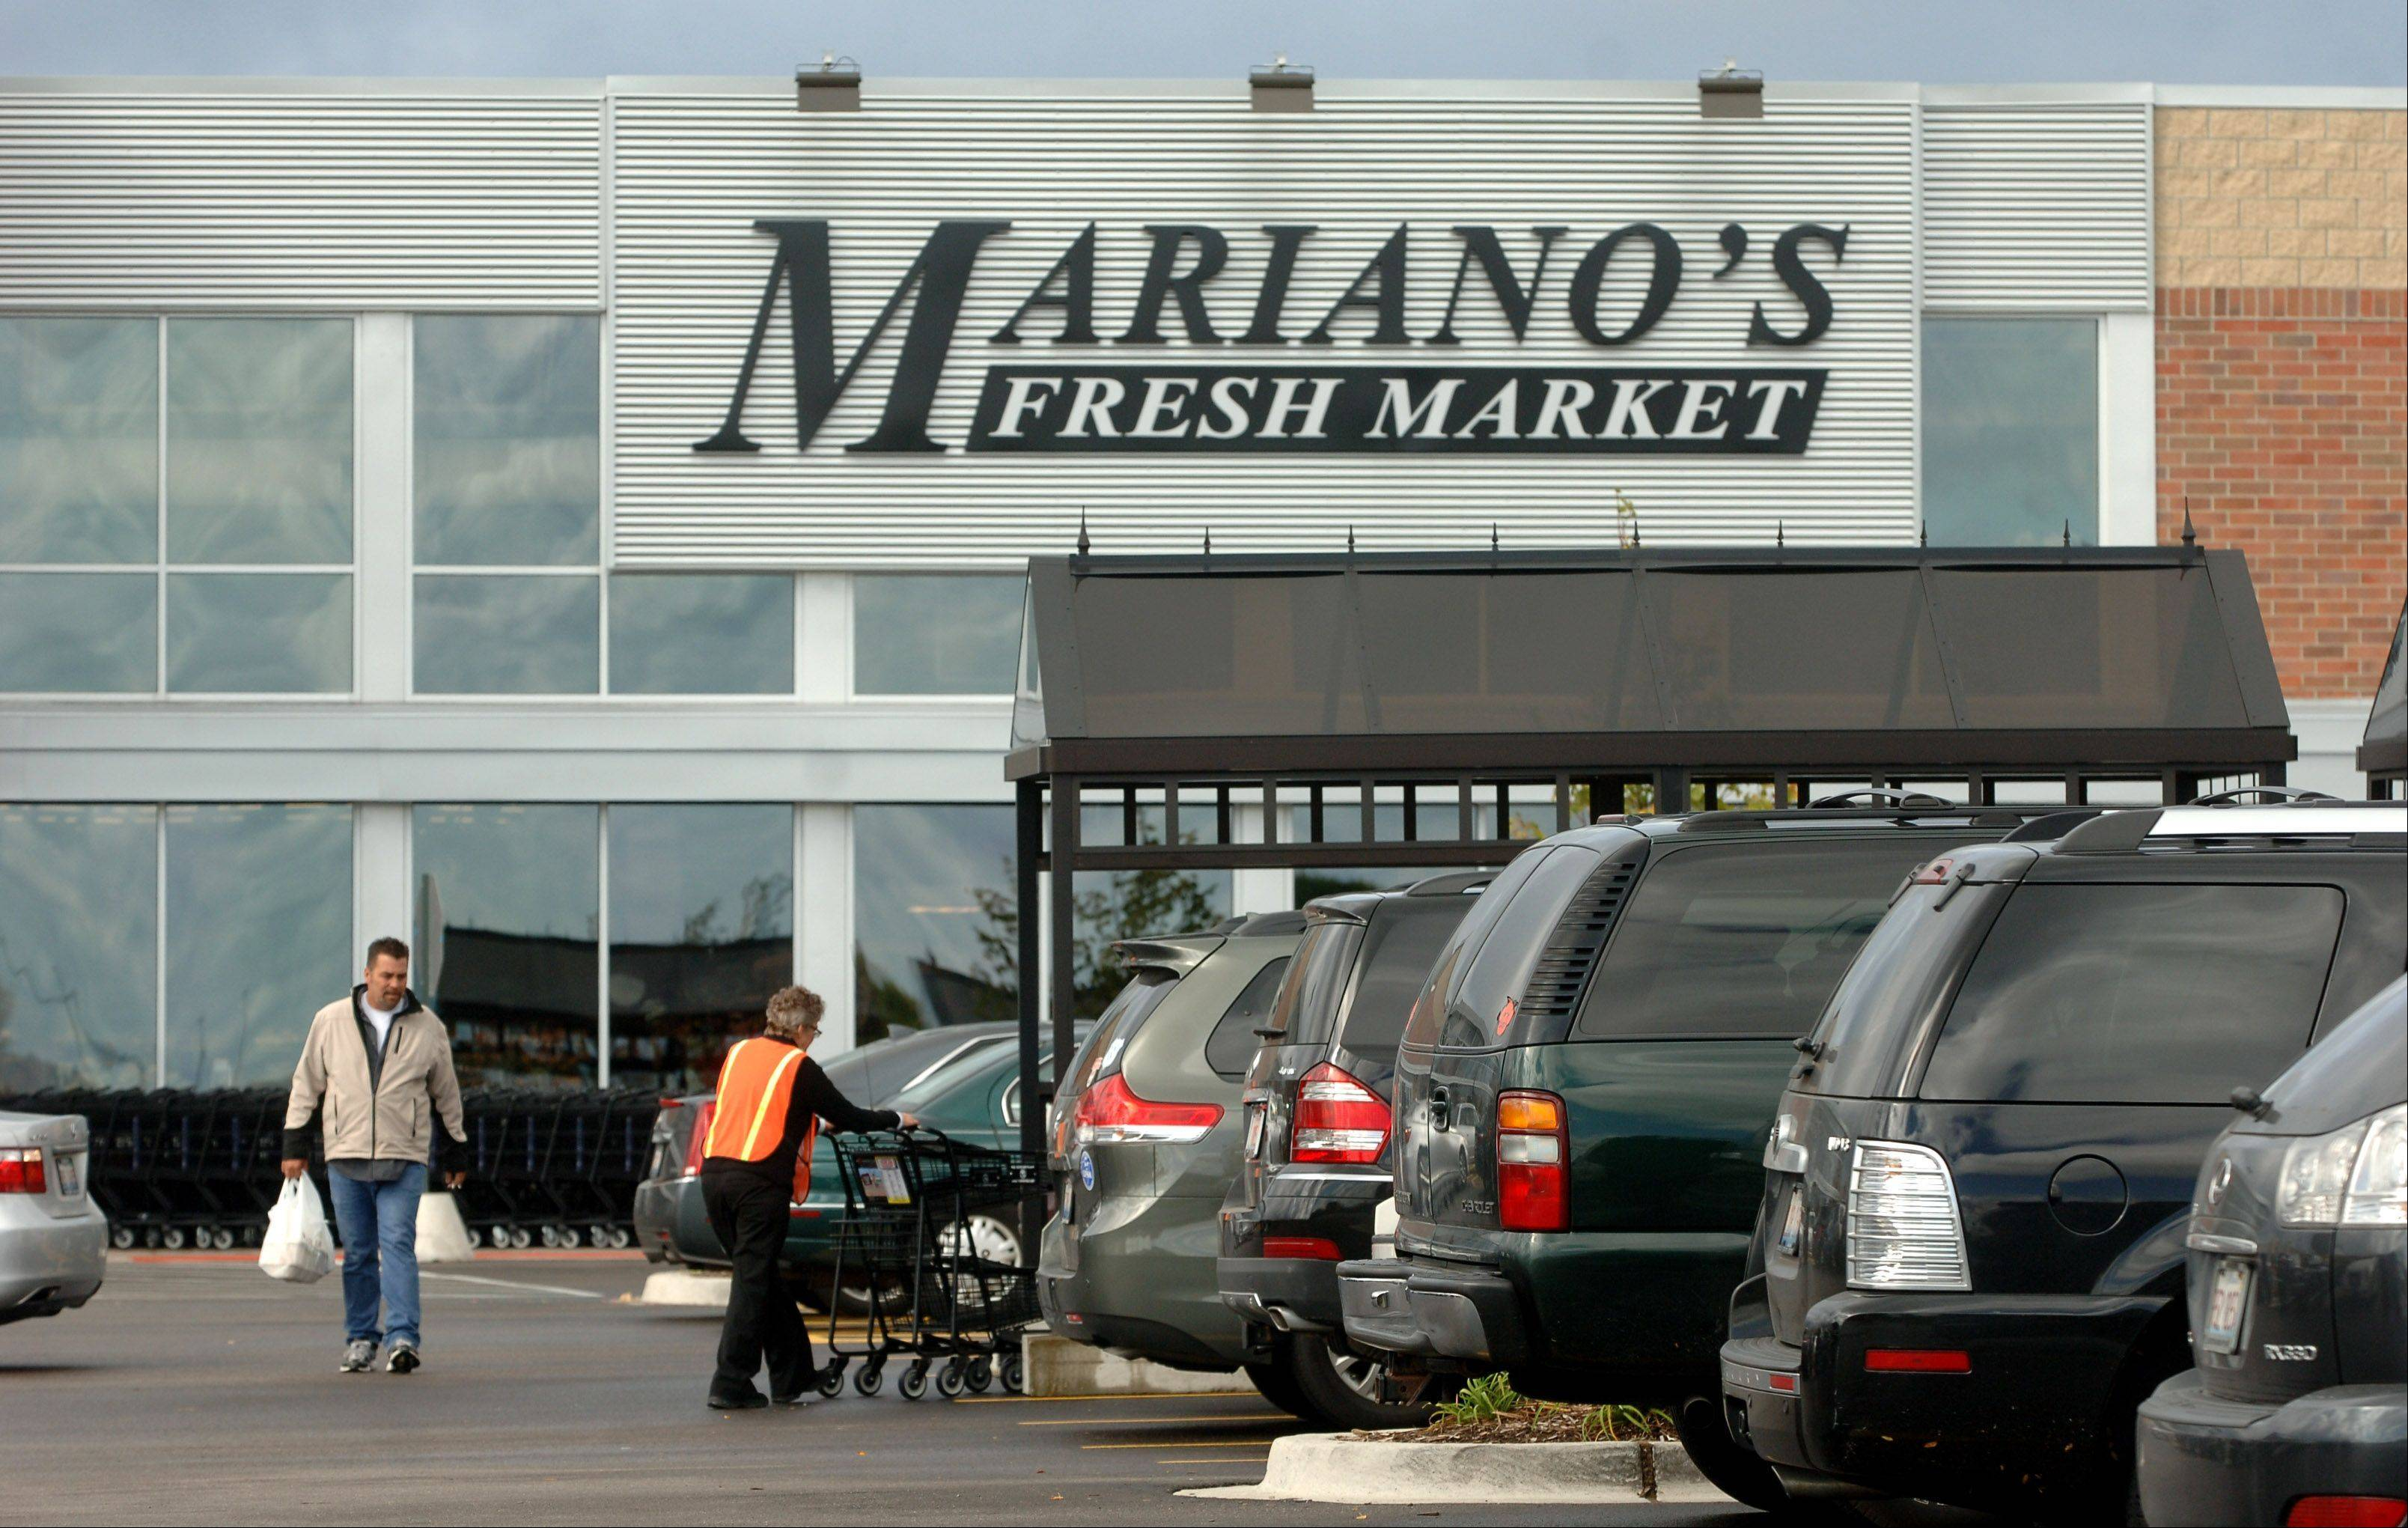 The parking lot at the Mariano's Fresh Market in Vernon Hills was so busy, the company bought an adjoining lot to add parking.